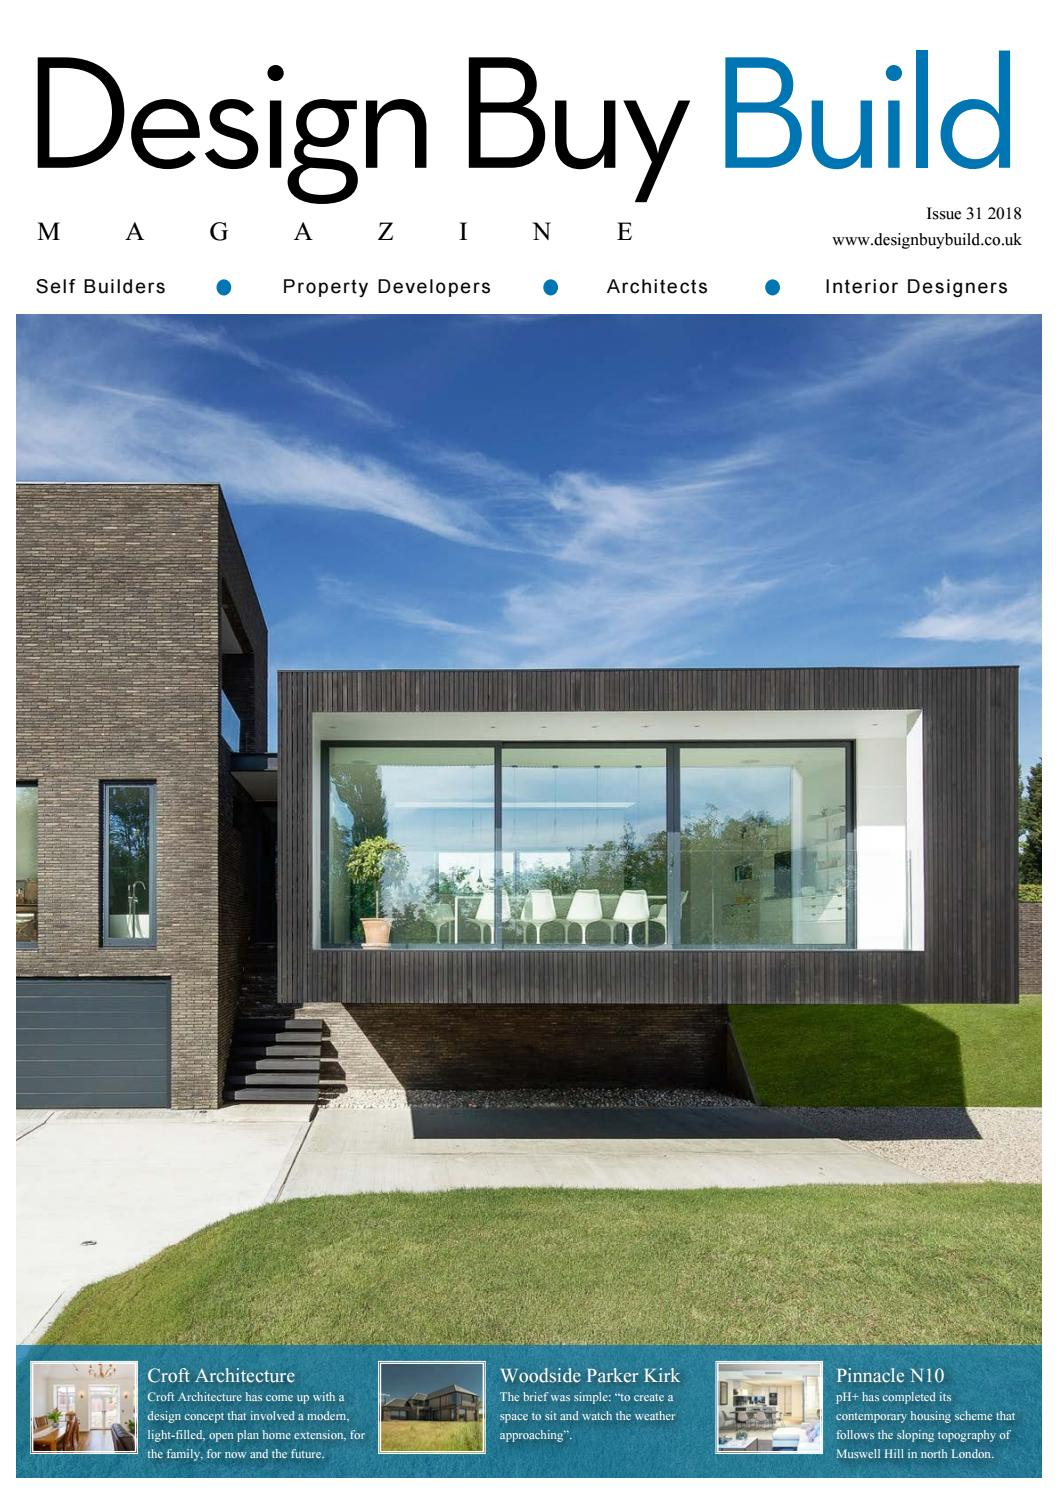 Design Buy Build - Issue 31 2018 by MH Media Global - issuu